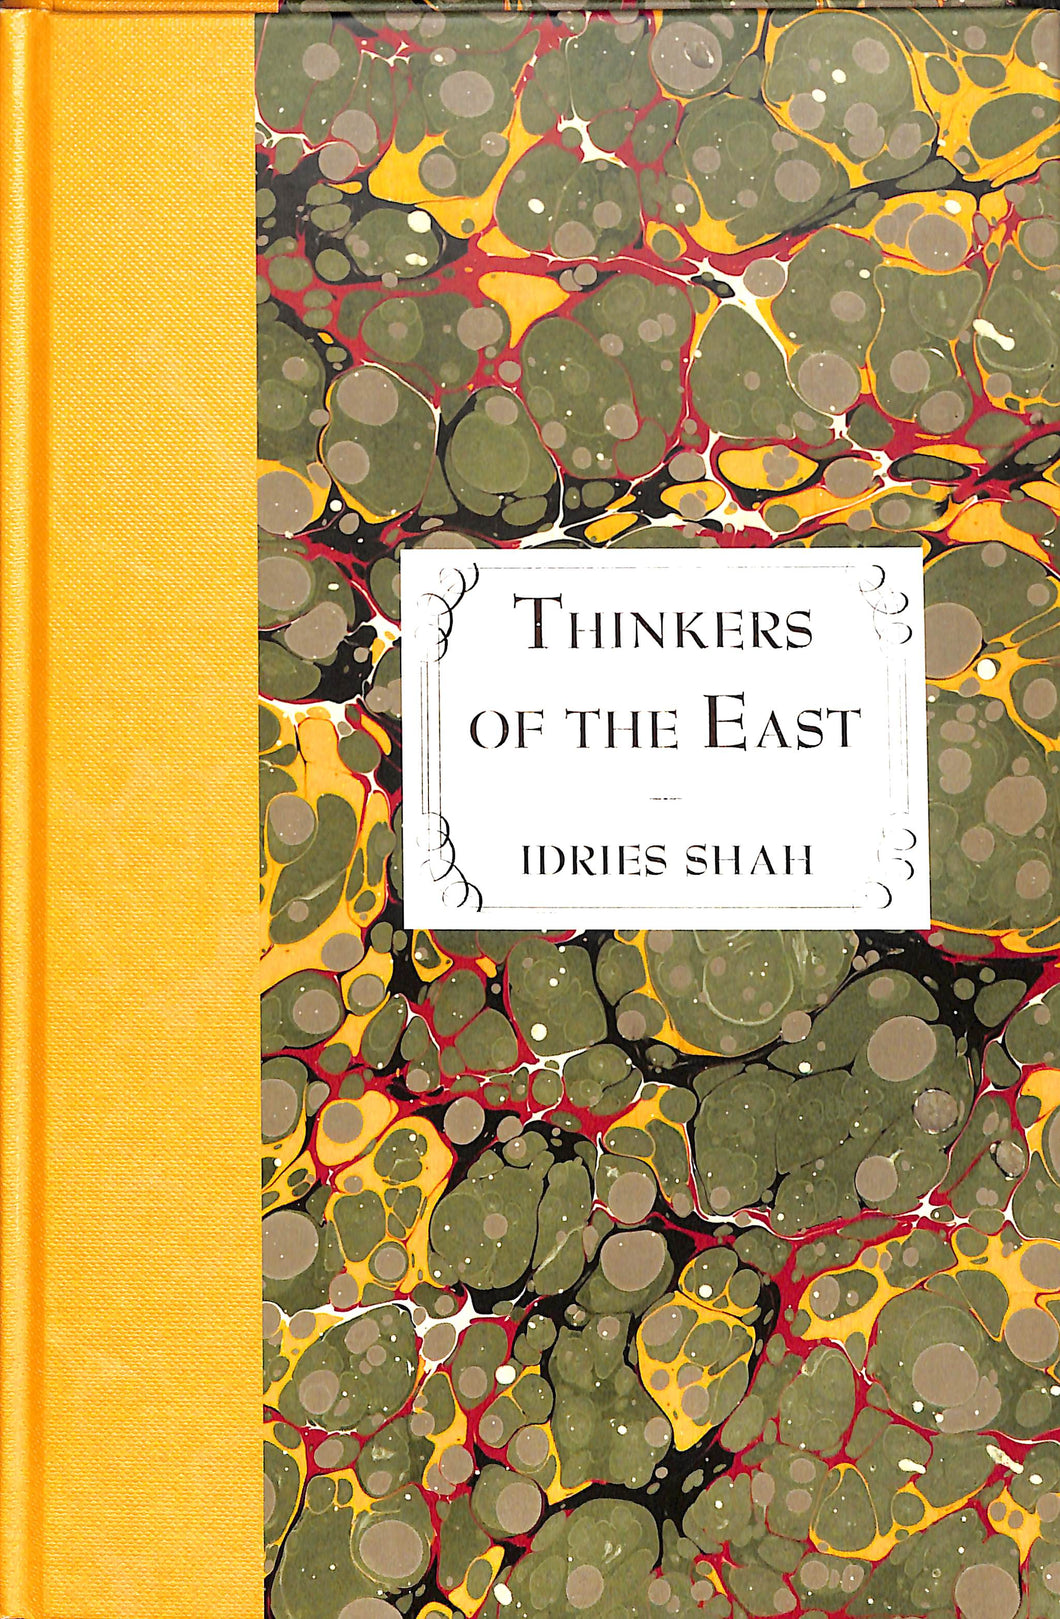 Thinkers of the East Special Edition Hardcover